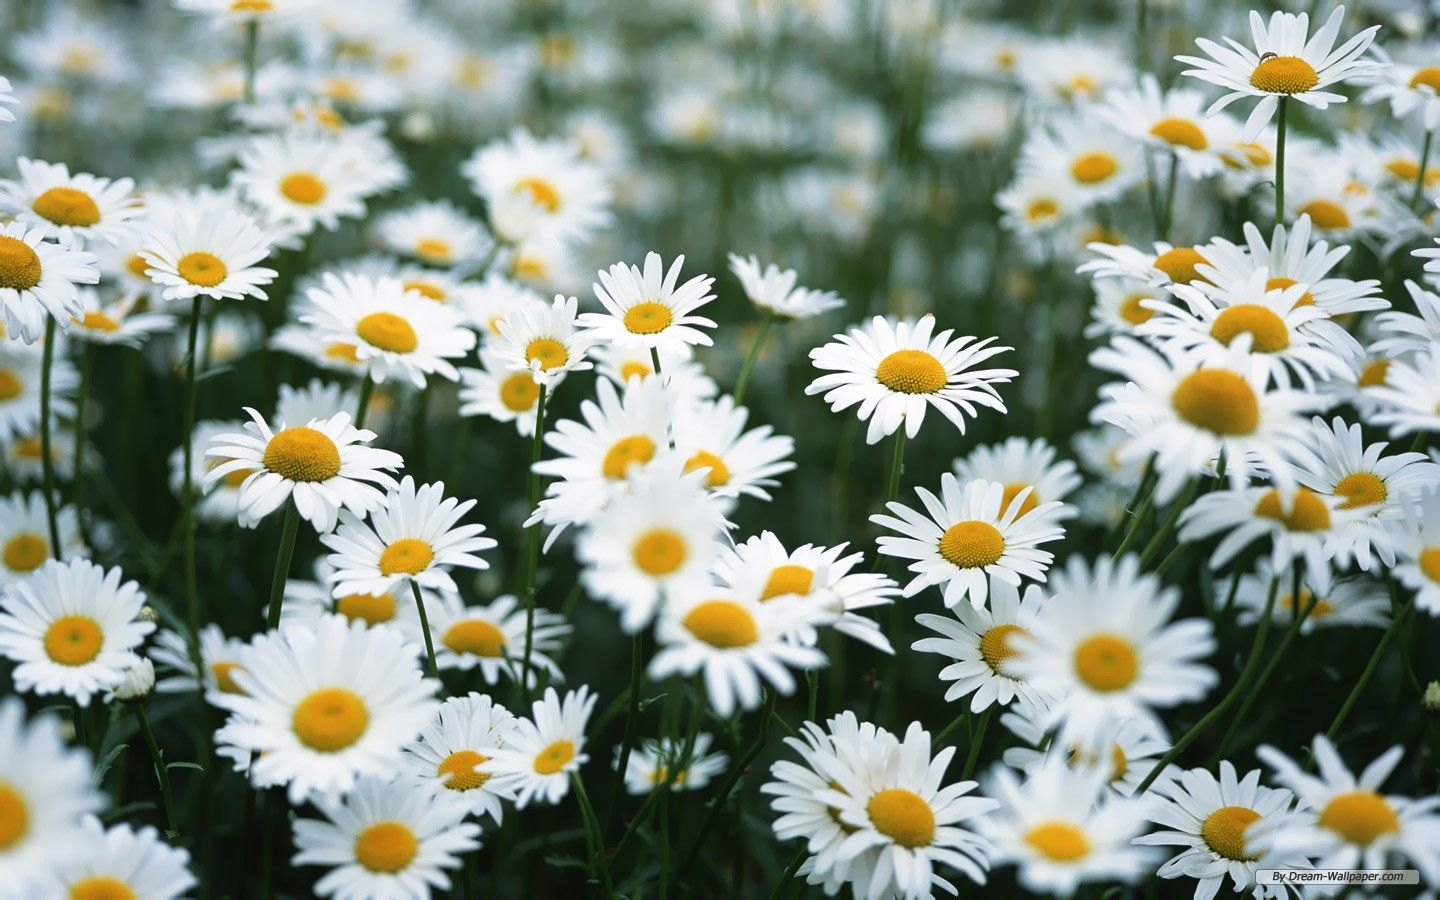 Free download daisy flower hd wallpaper inspiration pinterest free download daisy flower hd wallpaper dhlflorist Choice Image